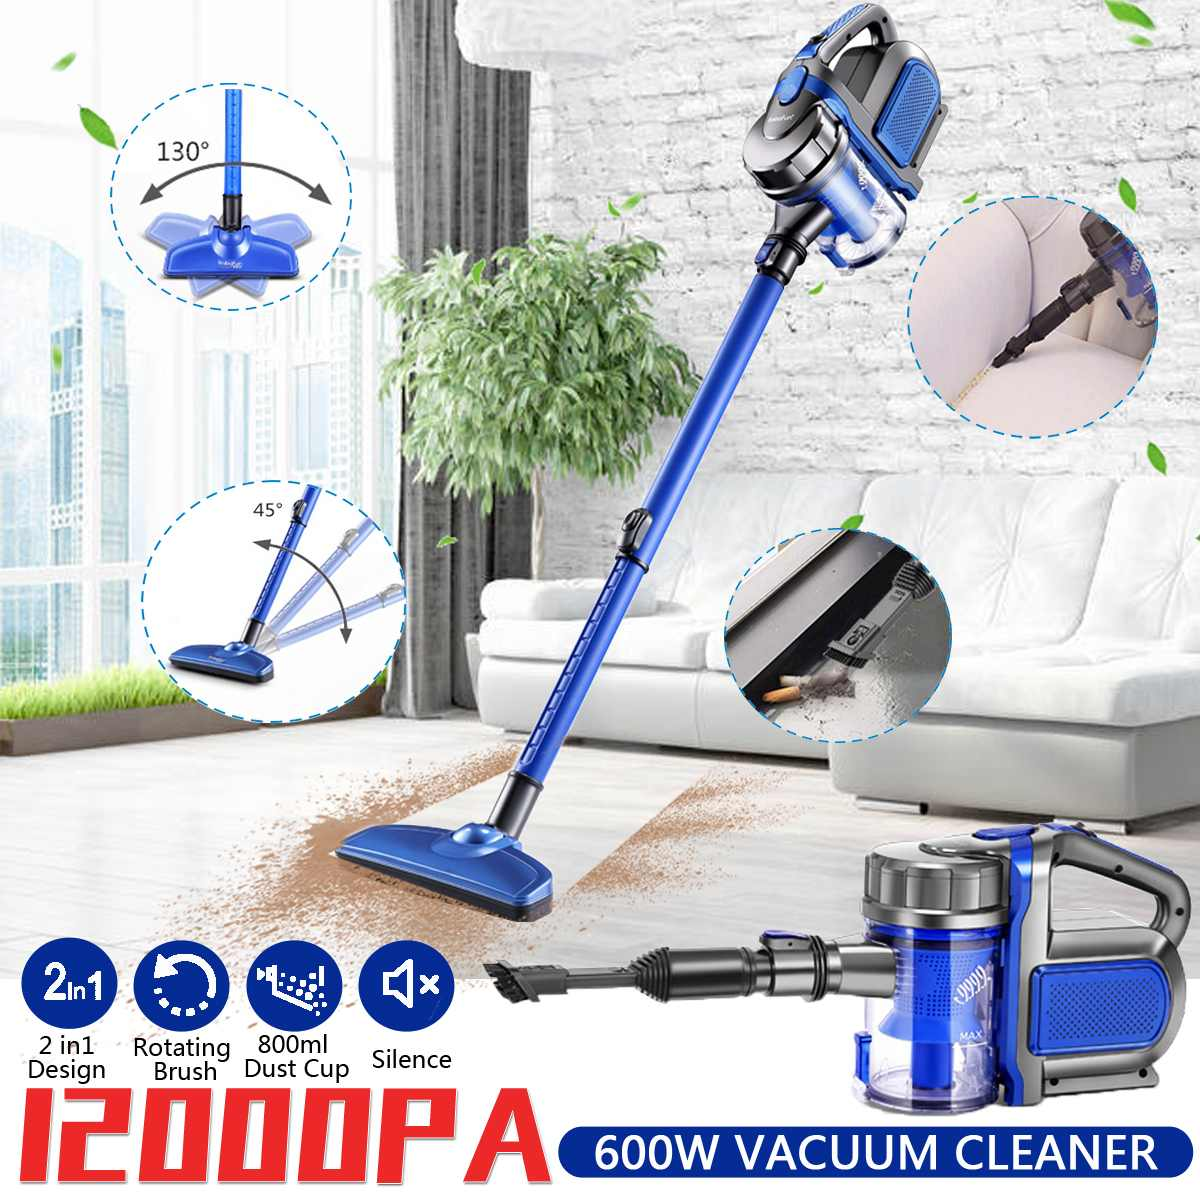 2 in 1 Handheld Vacuum Cleaner 220V 600W Protable Cyclone Filter 12000Pa Suction Carpet Sweep Dust Mite Collector For Home Car